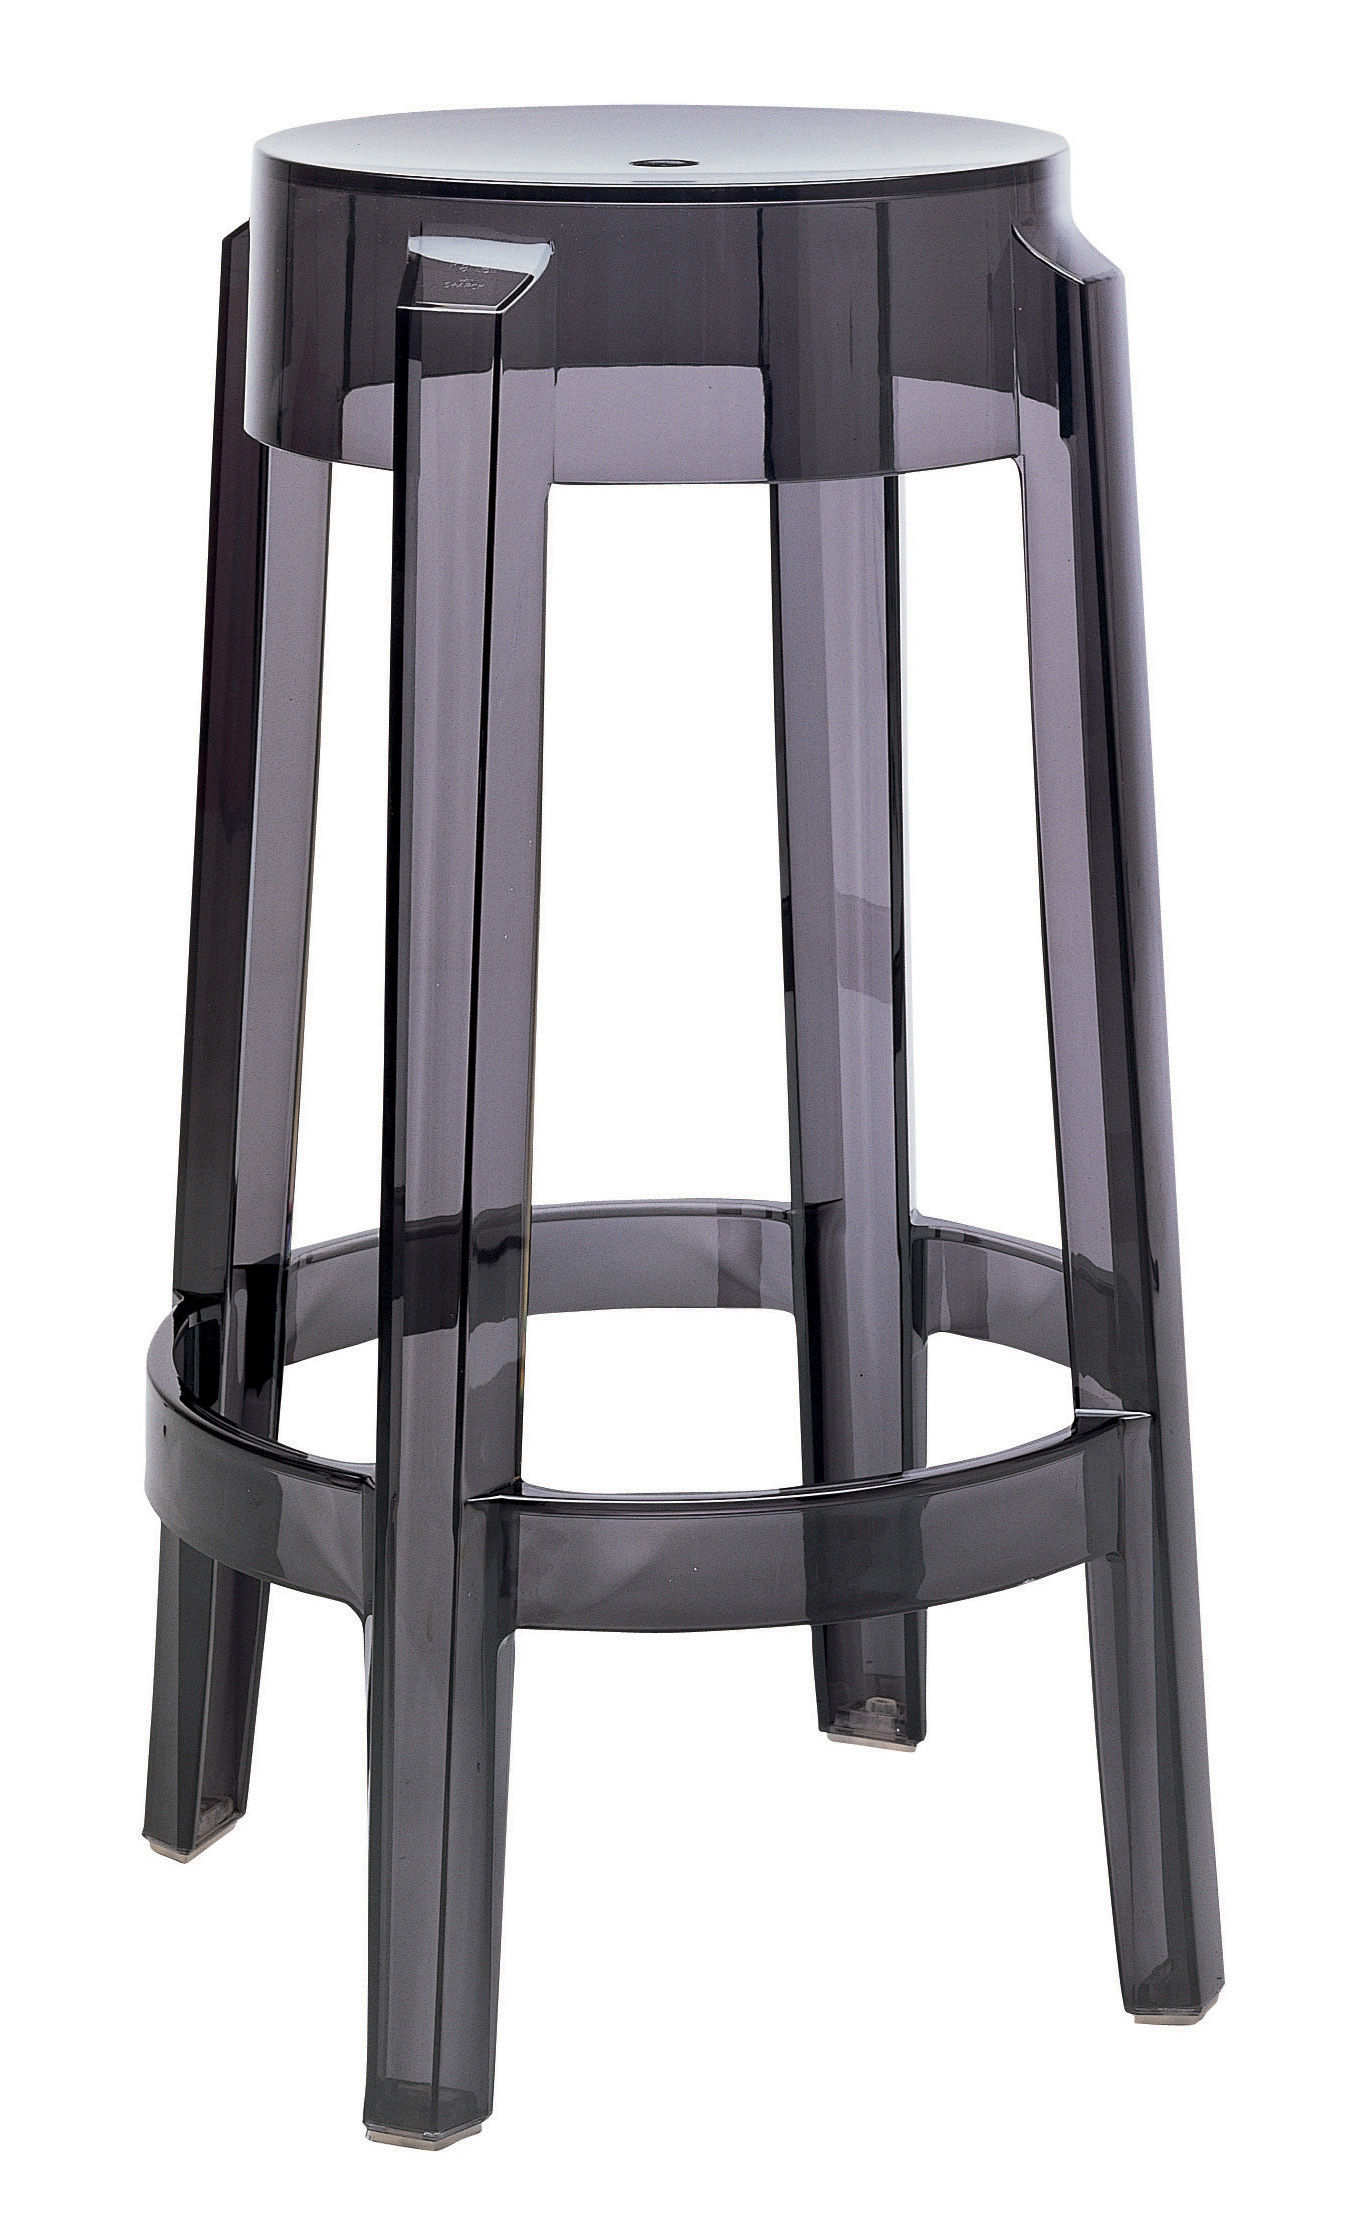 Tabourets De Bar Empilable Tabouret Haut Empilable Charles Ghost Kartell Fumé H